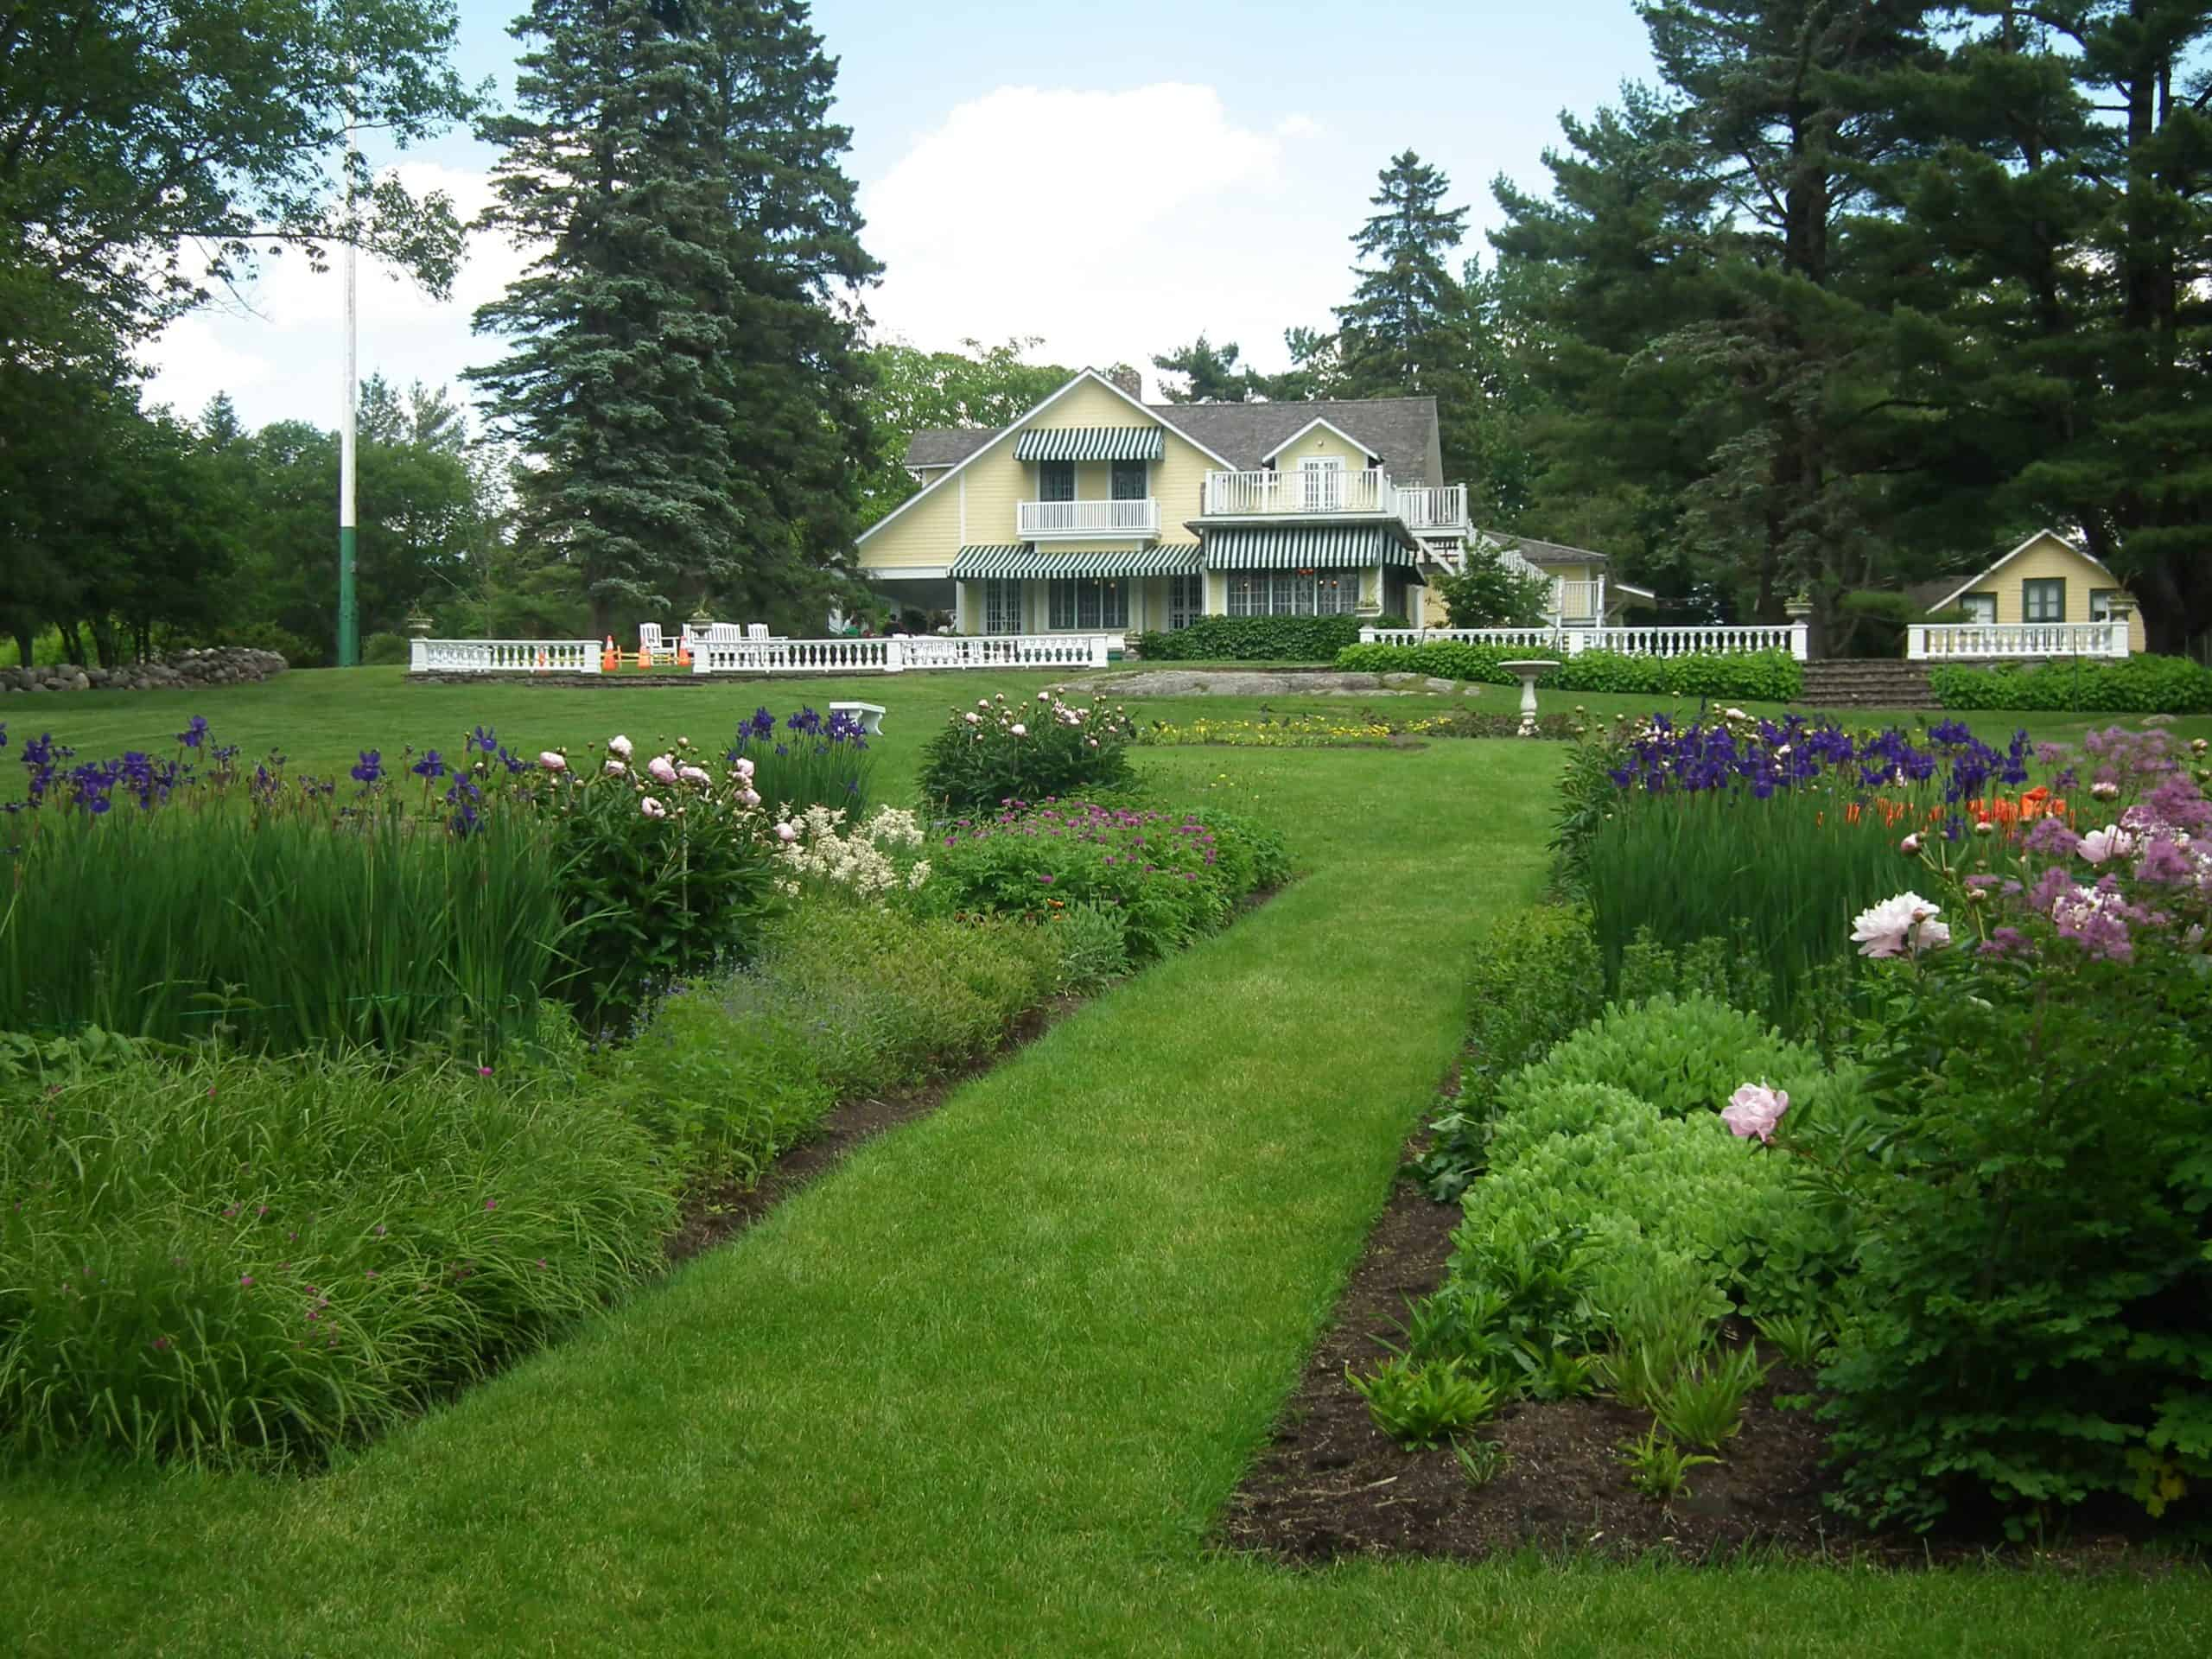 The view from the perennial borders to the Moorside residence.